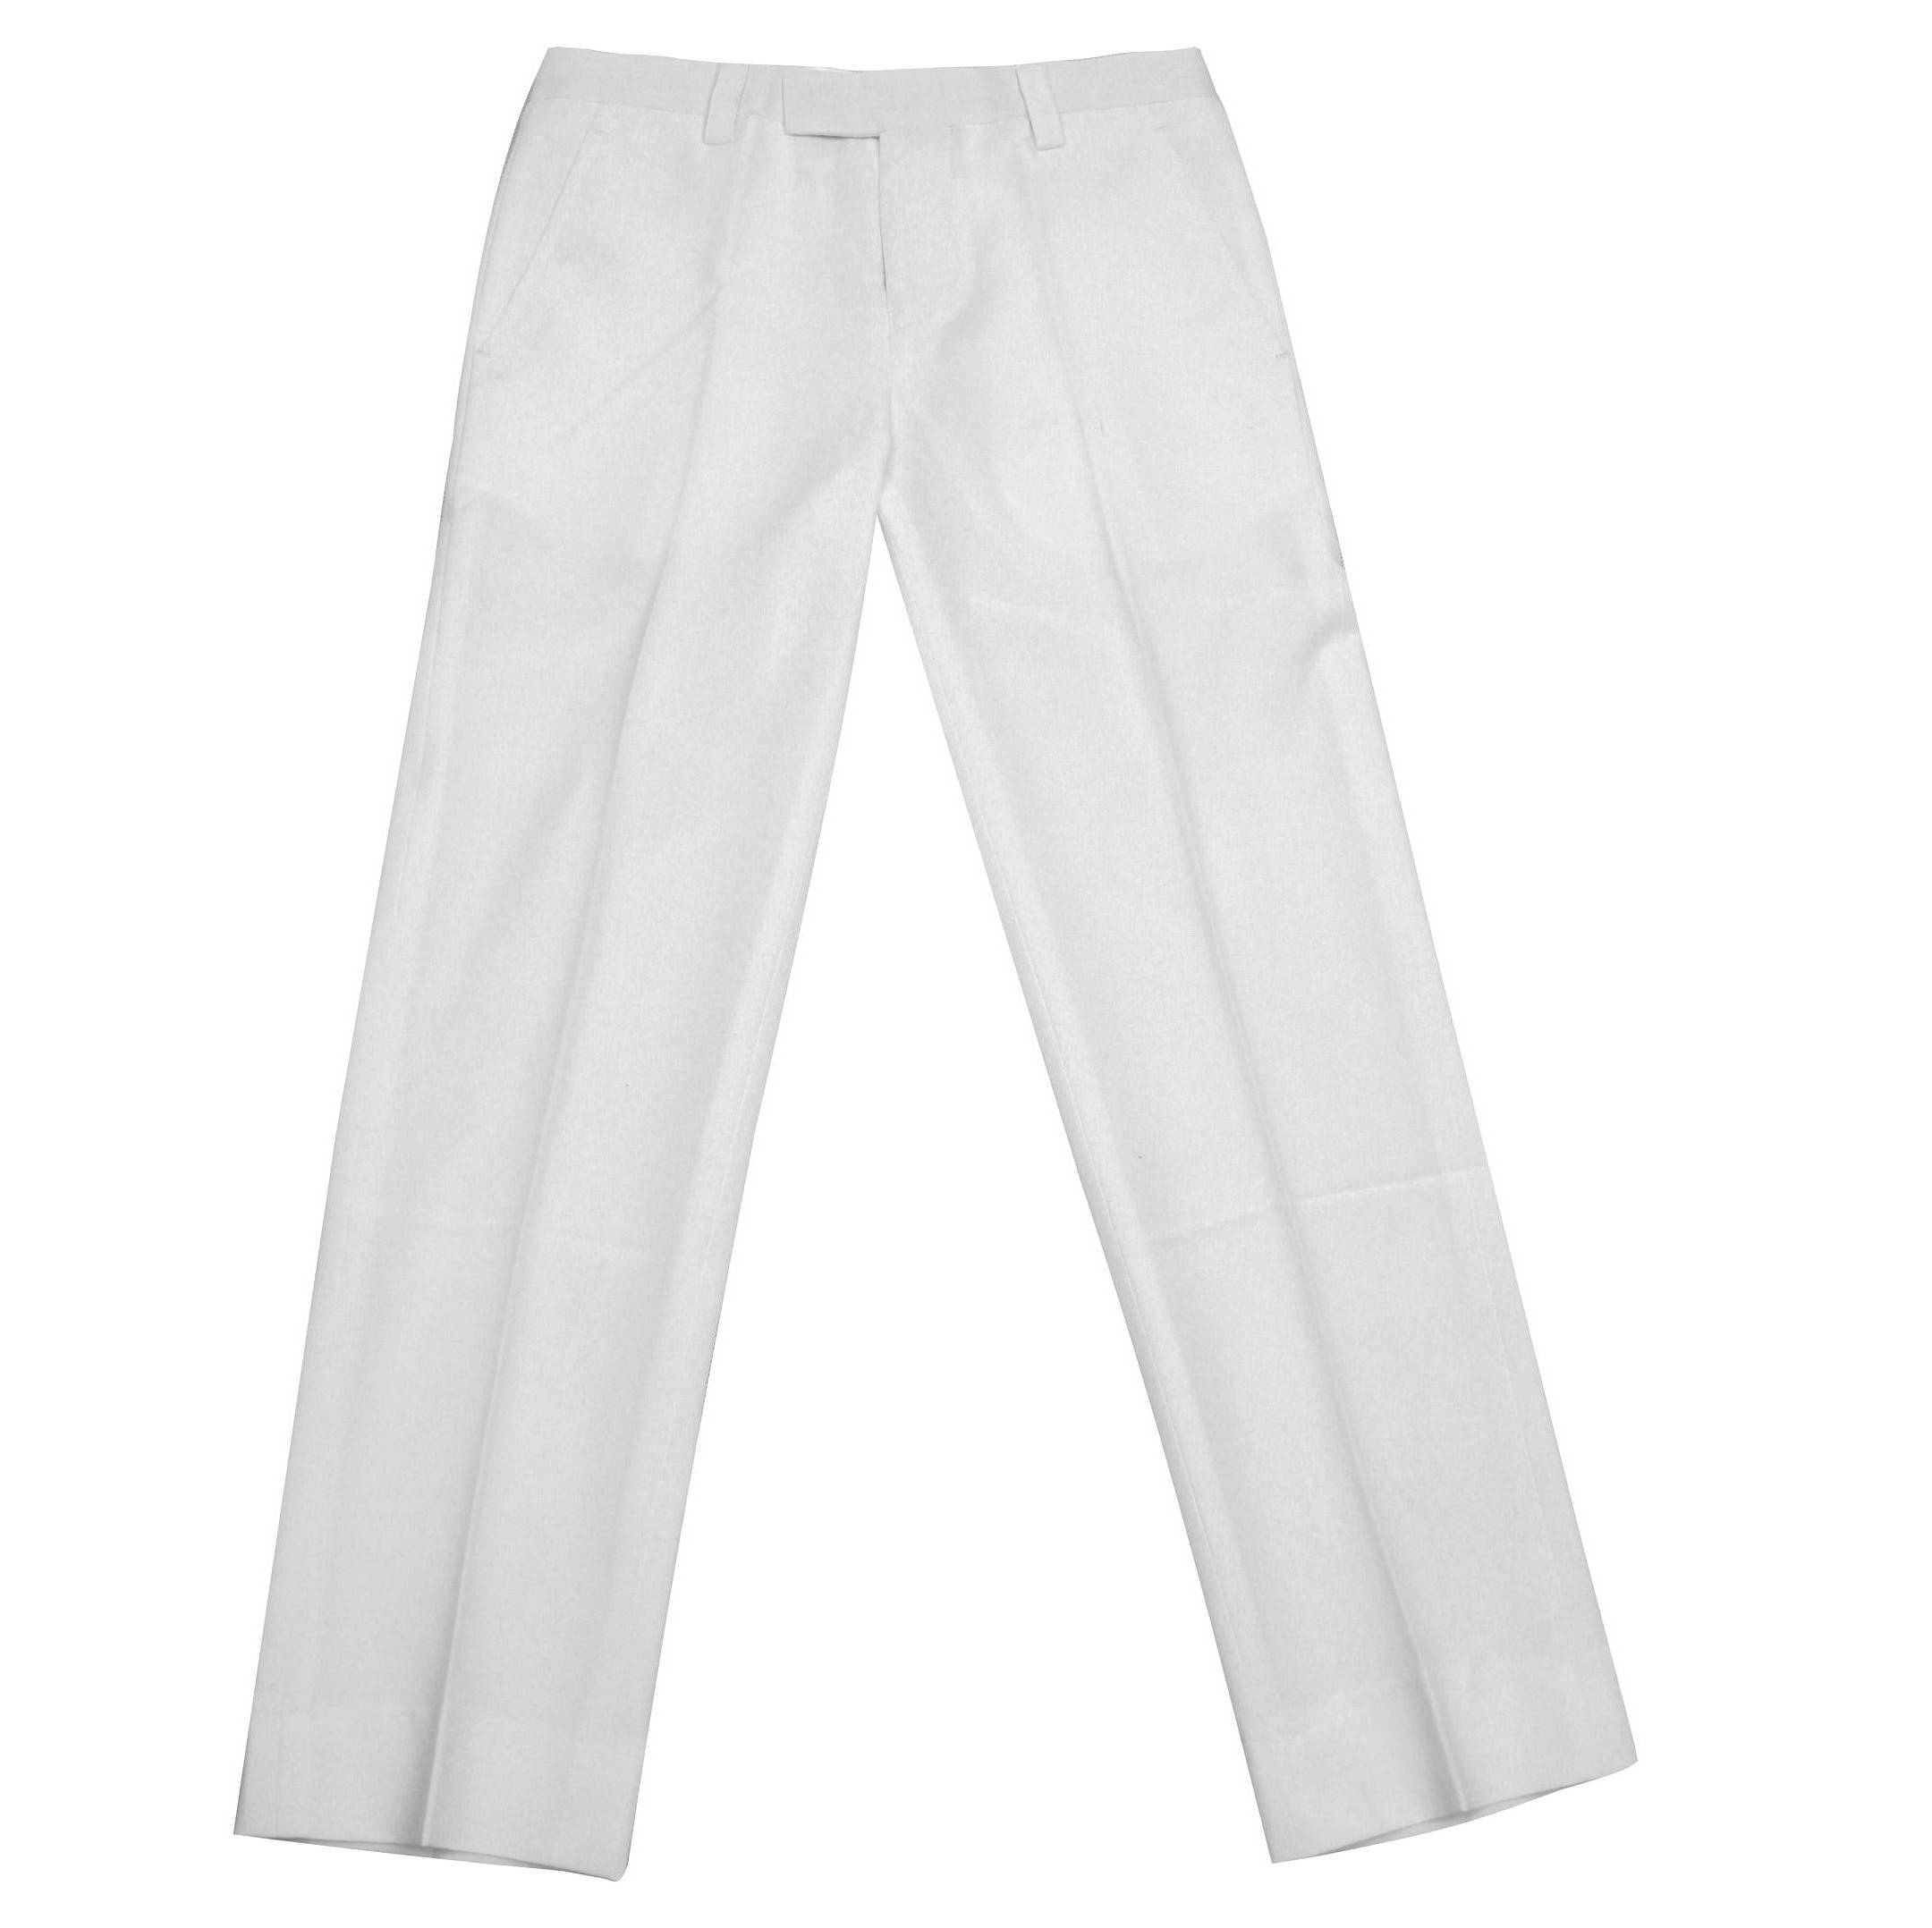 WDNY Boy's Communion Suit Pant, $36, target.com